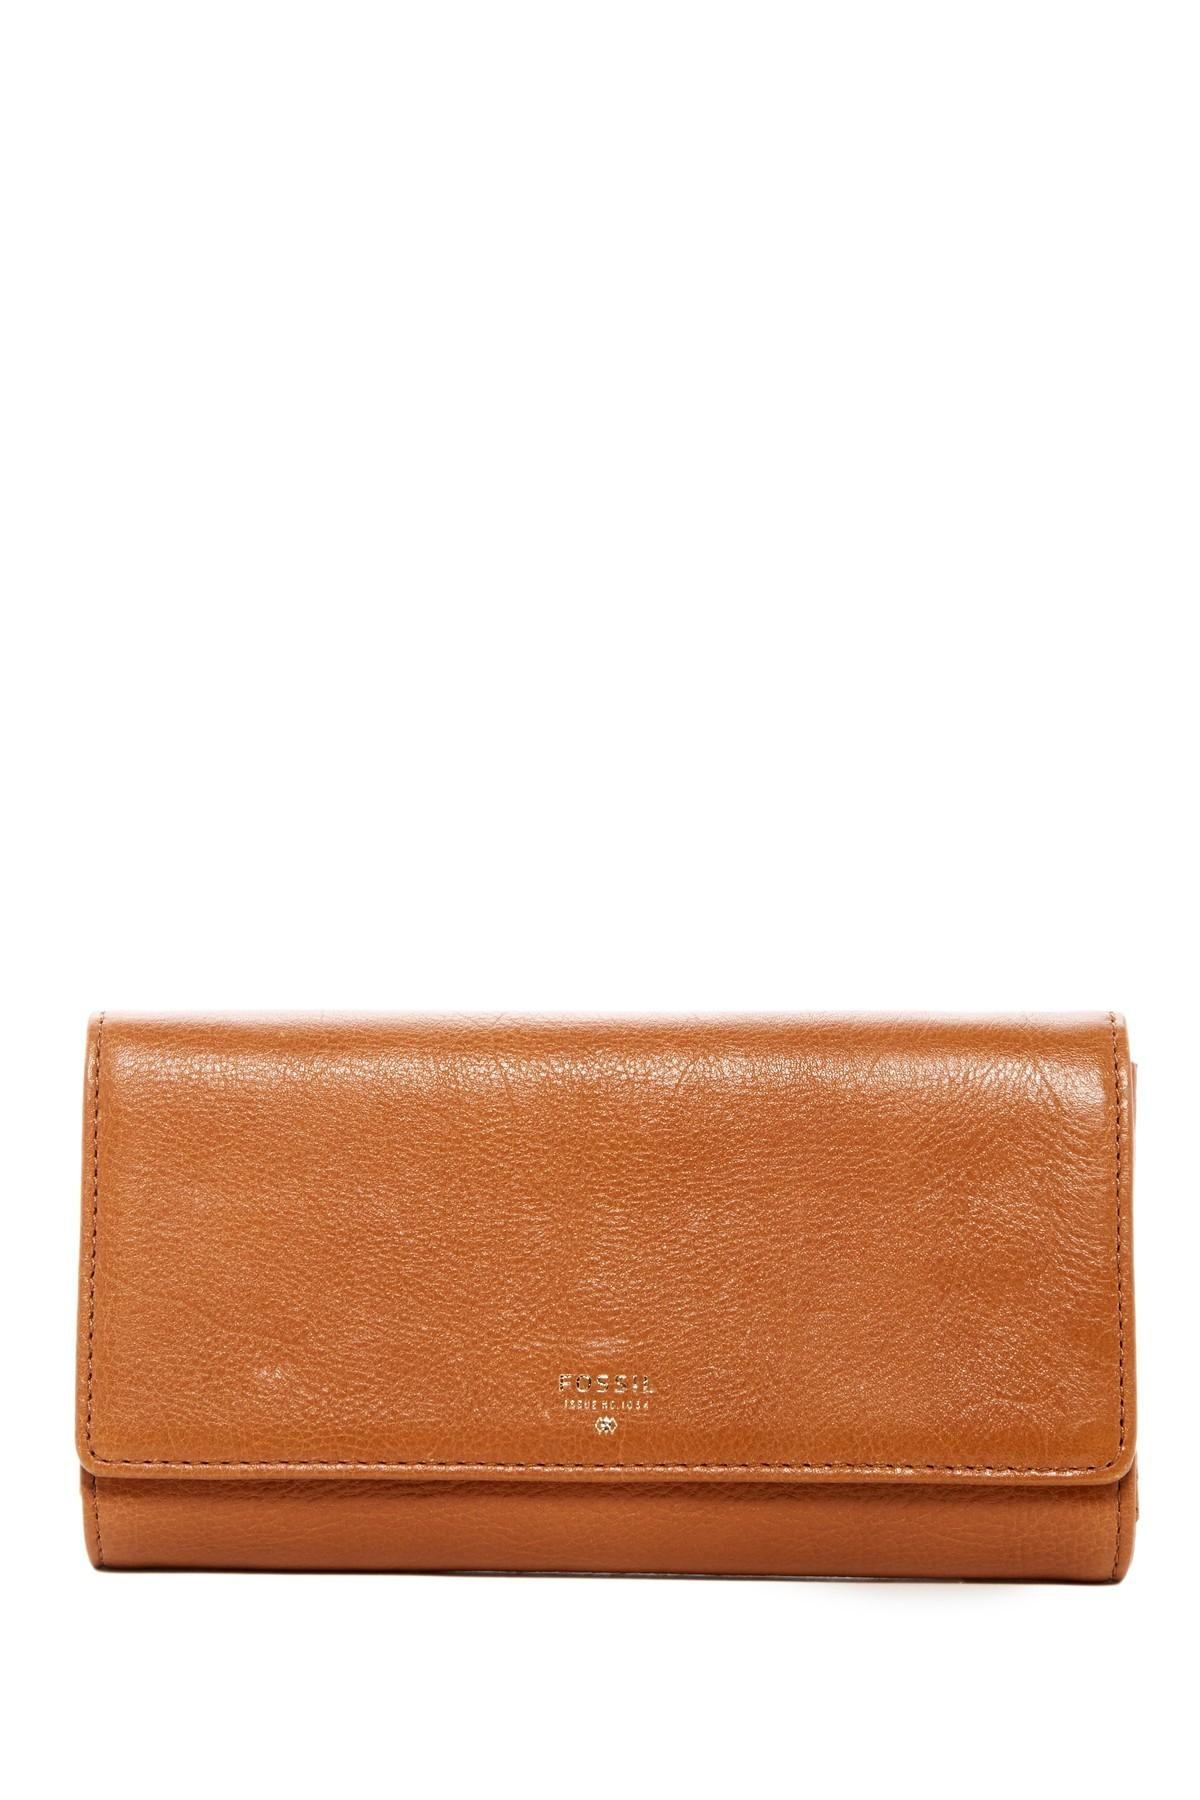 Fossil Sydney Flap Leather Clutch Nordstrom Rack